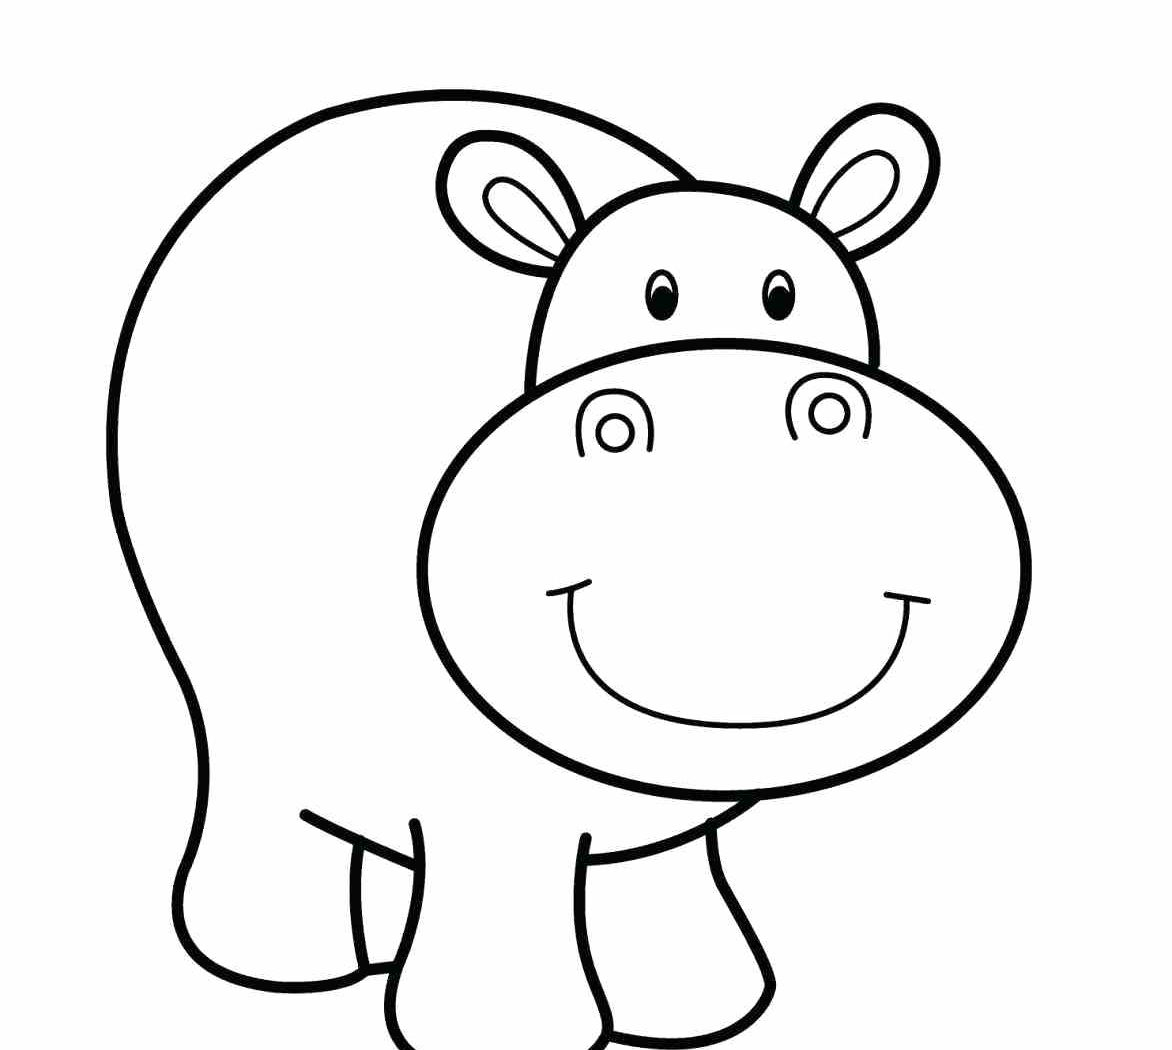 coloring hippo clipart hippo coloring pages gallery whitesbelfast hippo clipart coloring